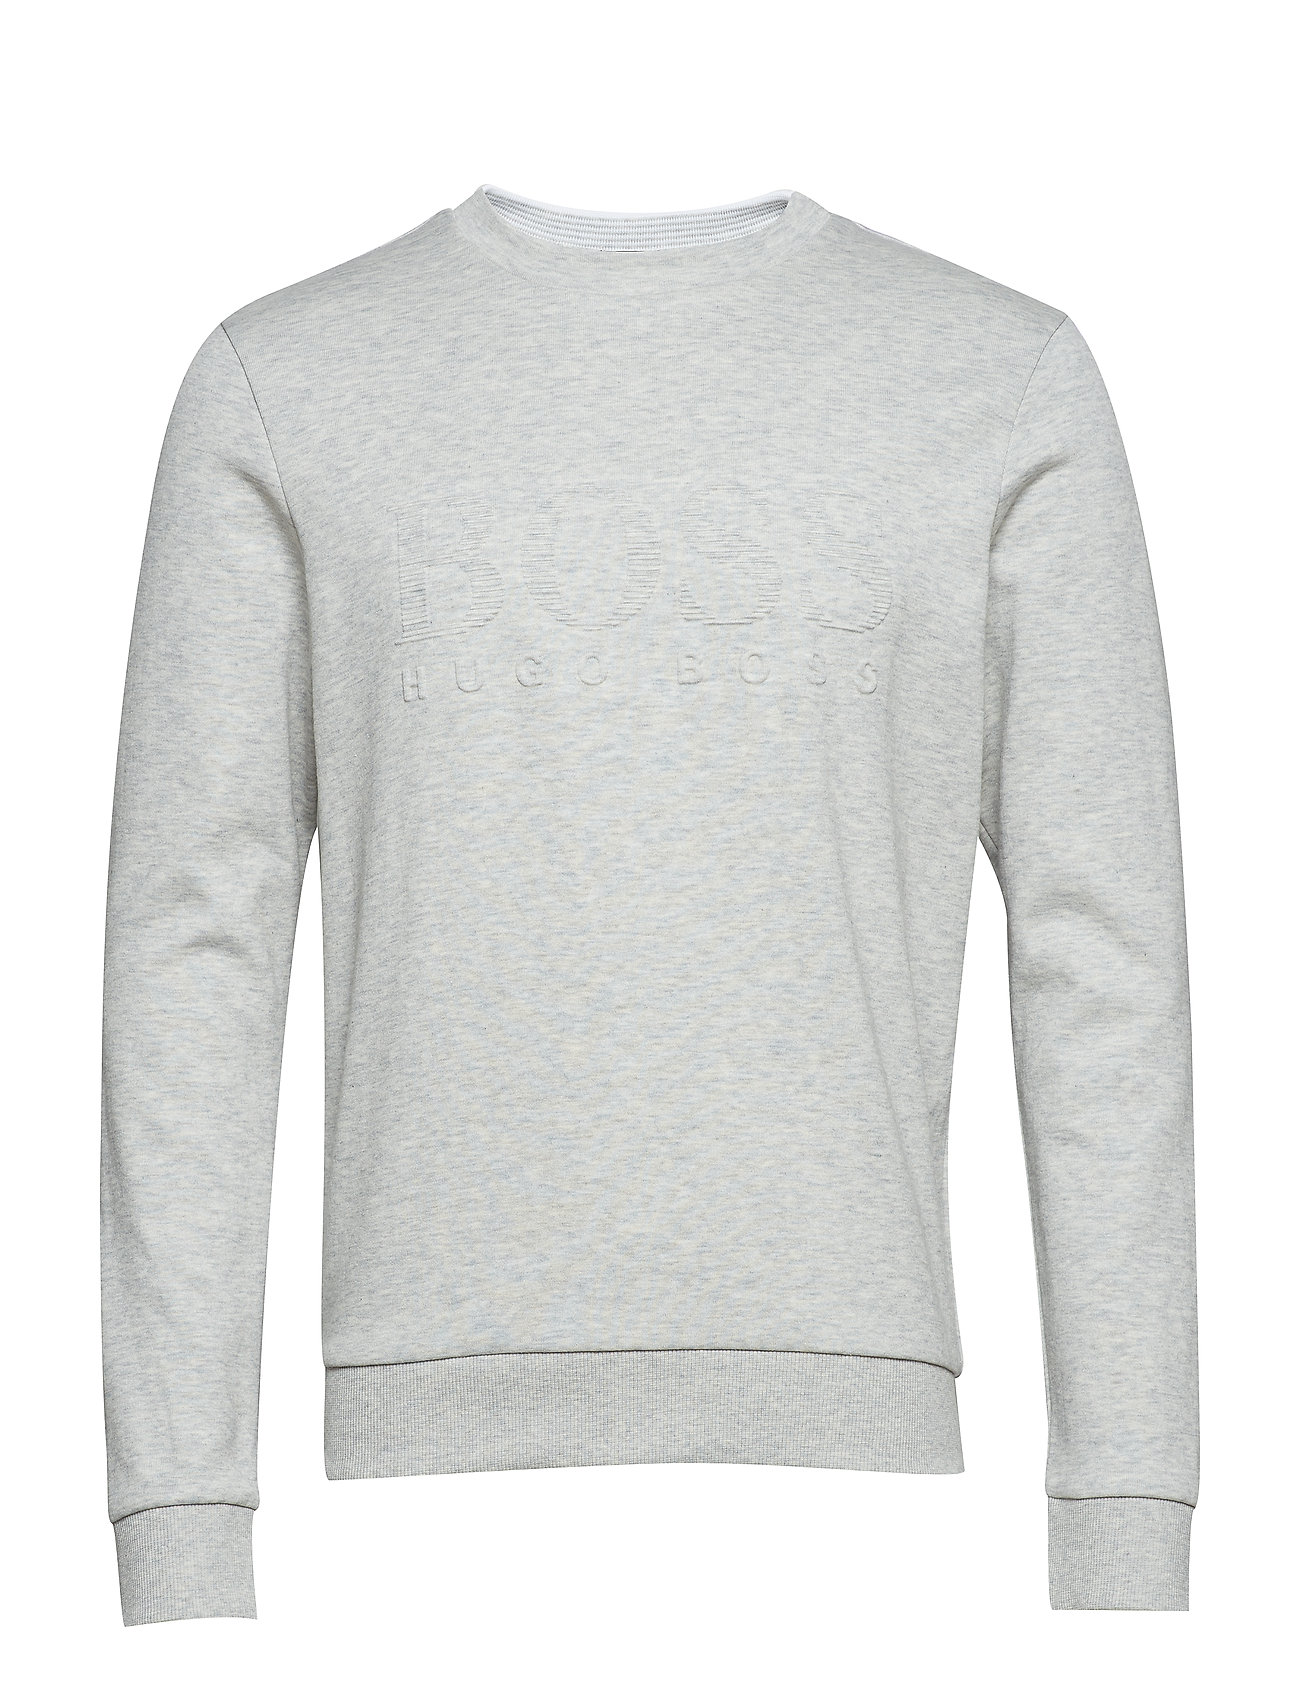 HUGO BOSS Salbo Sweat-shirt Pullover Grau BOSS ATHLEISURE WEAR